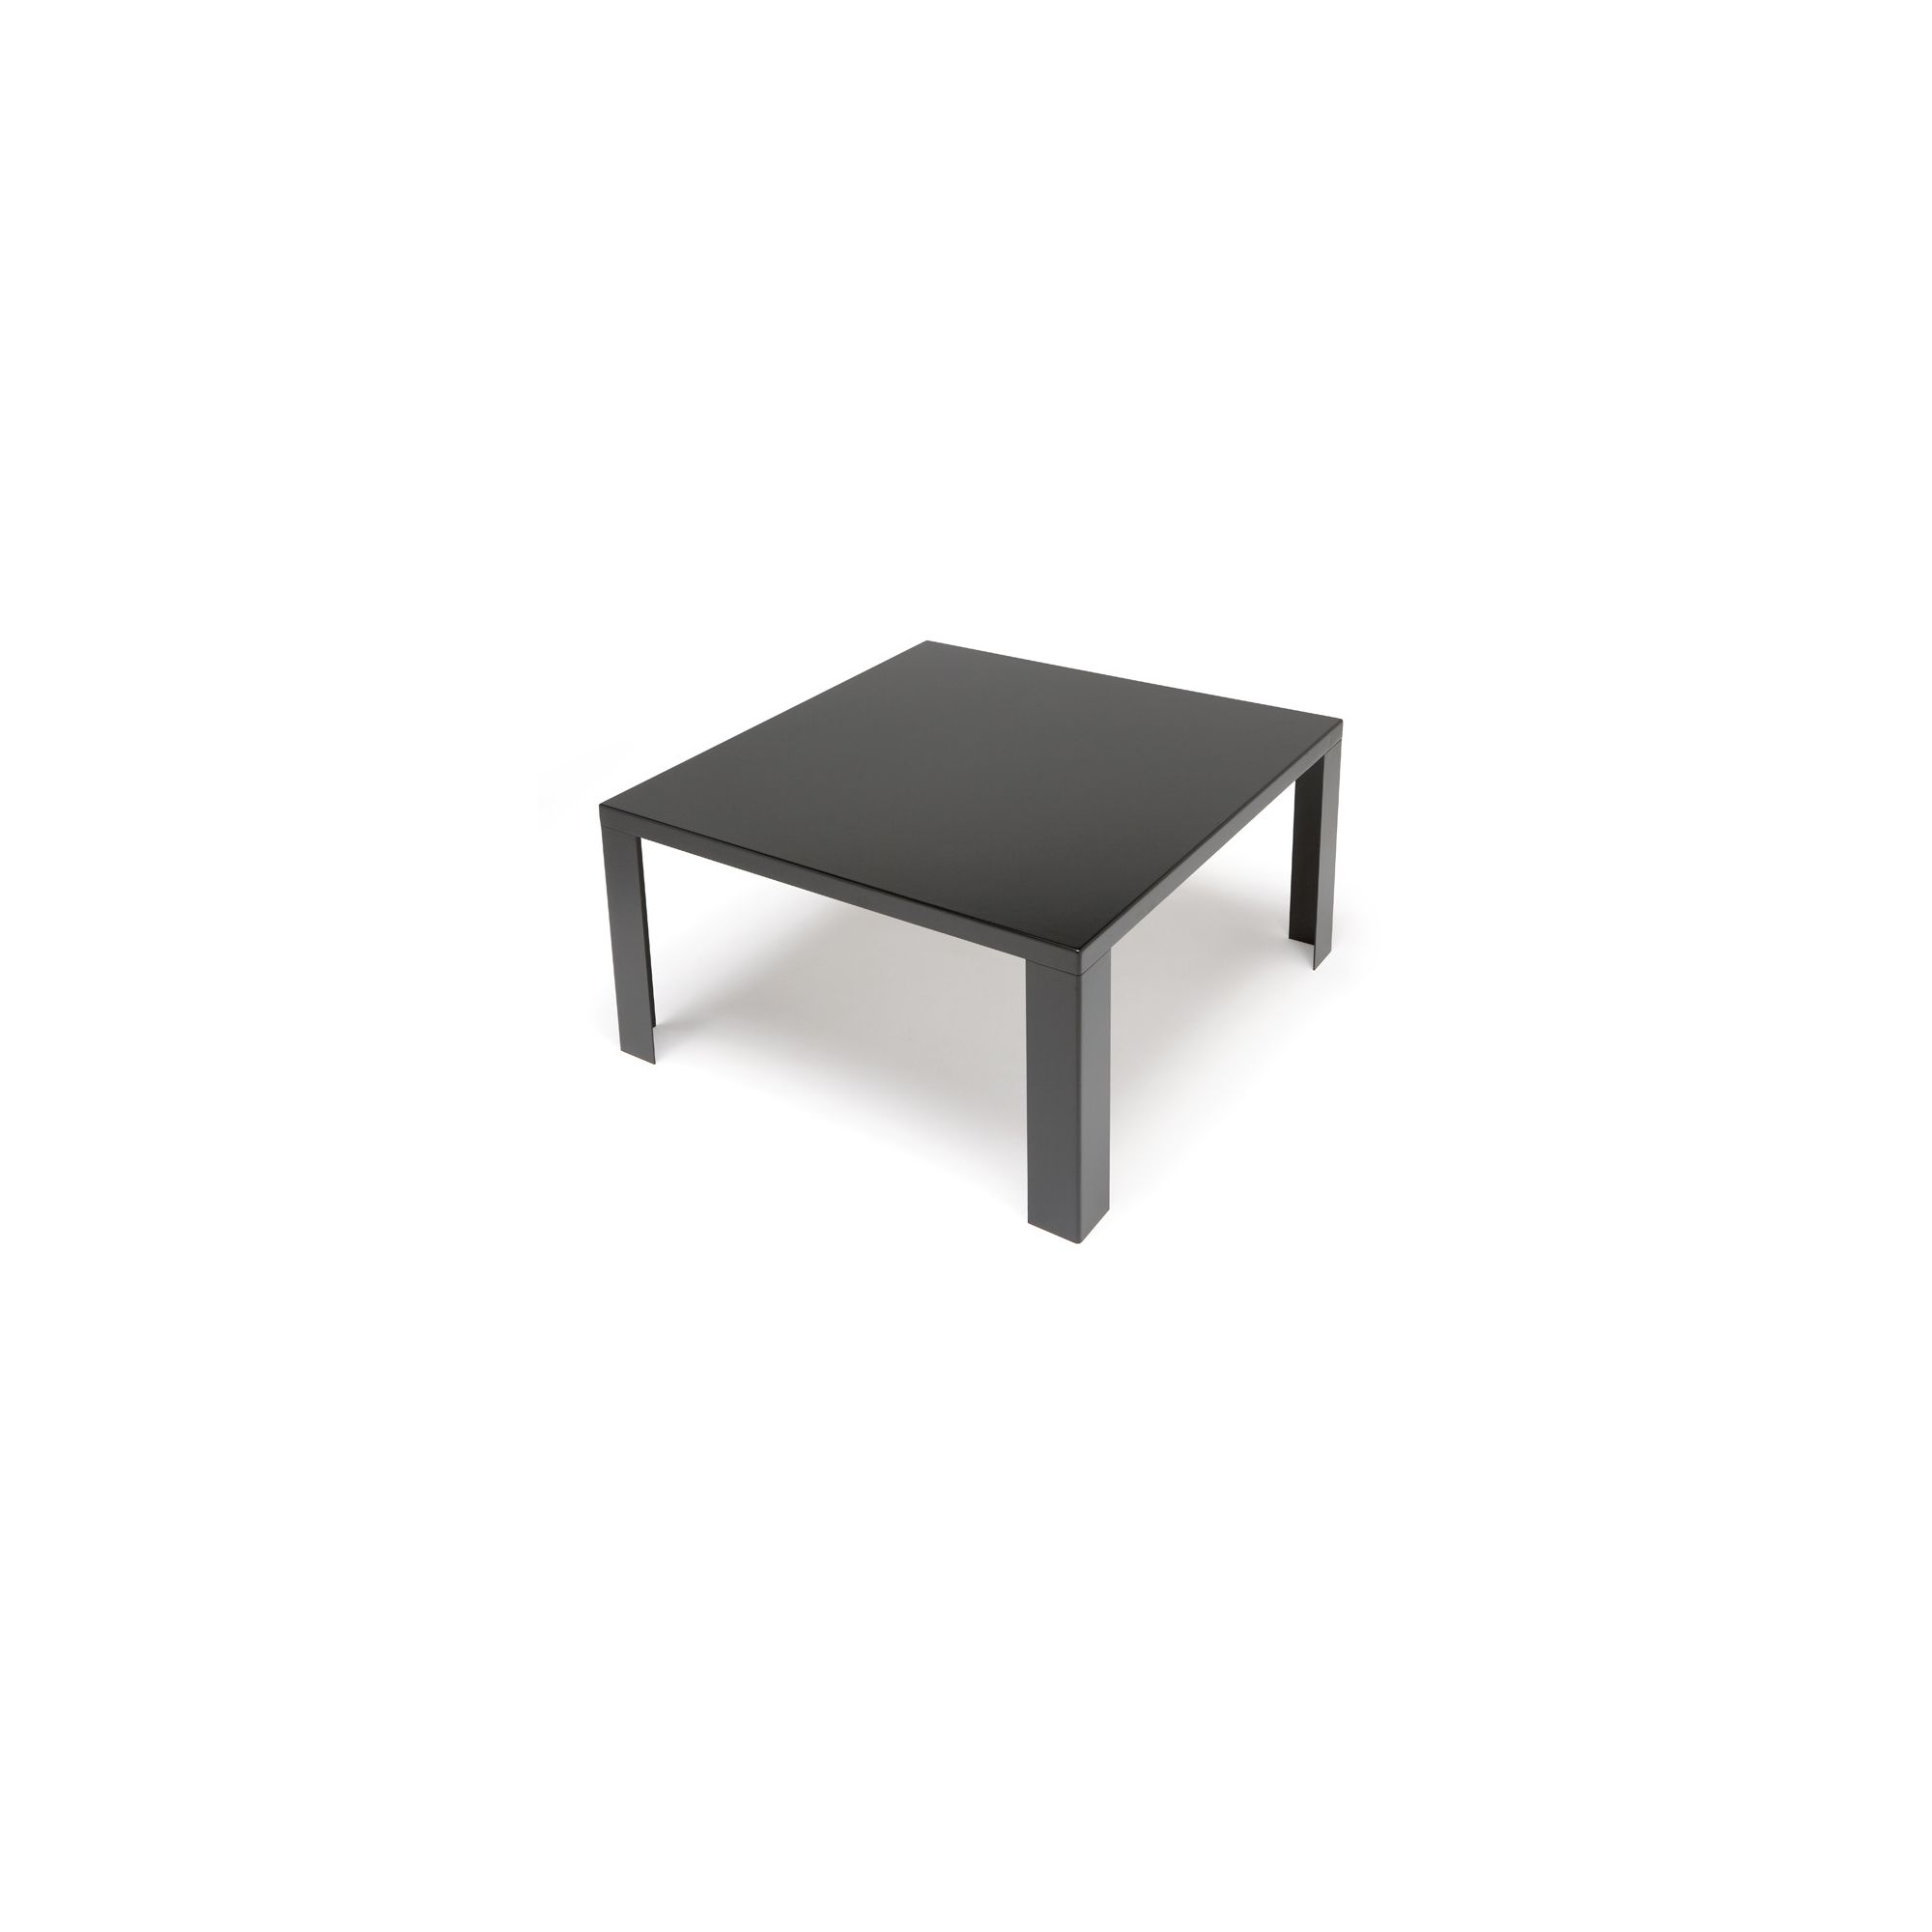 Andreu World Pure Coffee Table - 34cm x 110cm x 110cm - White at Tesco Direct